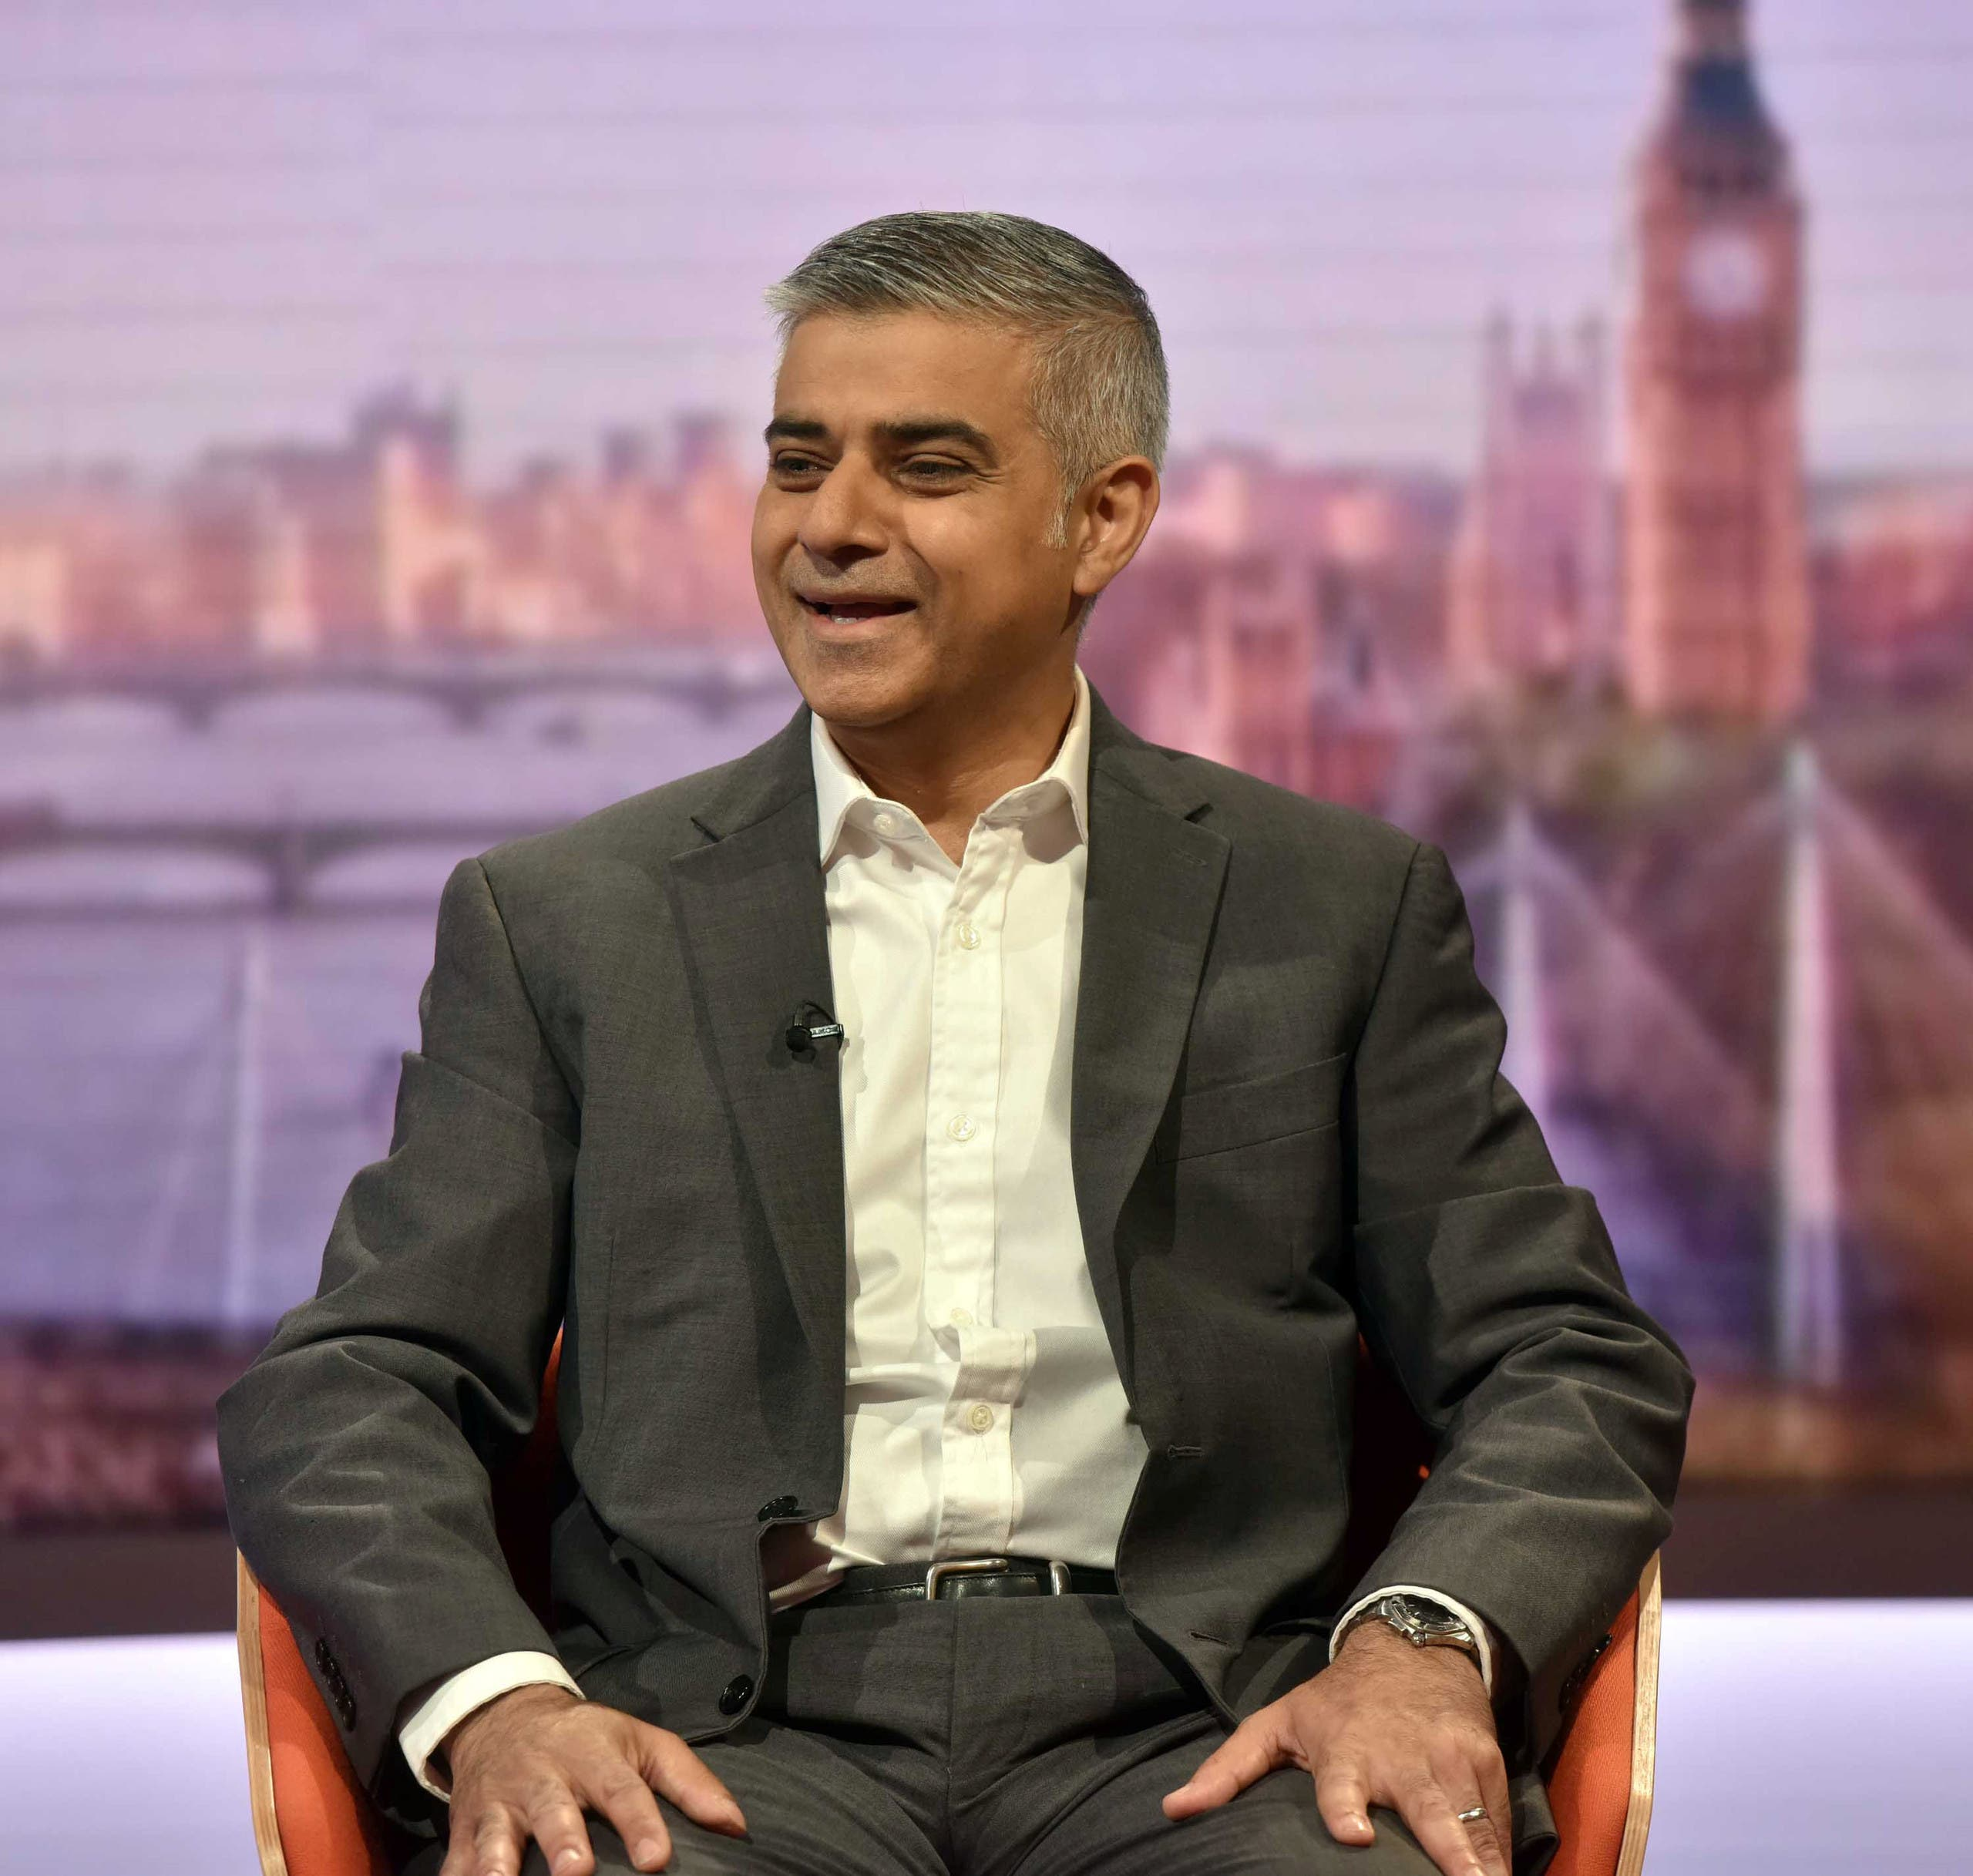 London's newly elected mayor Sadiq Khan appears on the BBC's Andrew Marr Show programe in a studio in London, Britain, May 8, 2016. (Reuters)